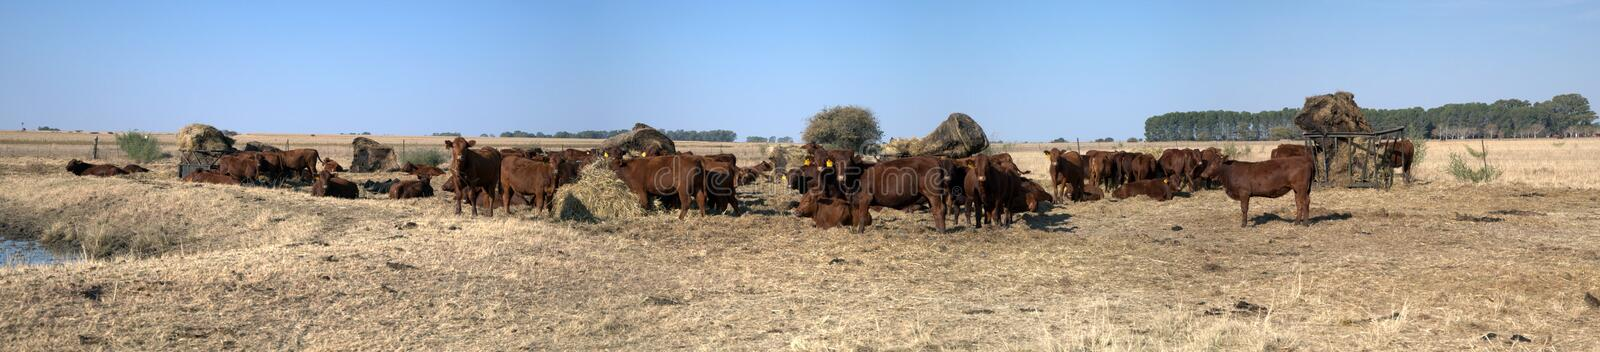 Cattle Ranch. Royalty Free Stock Photography